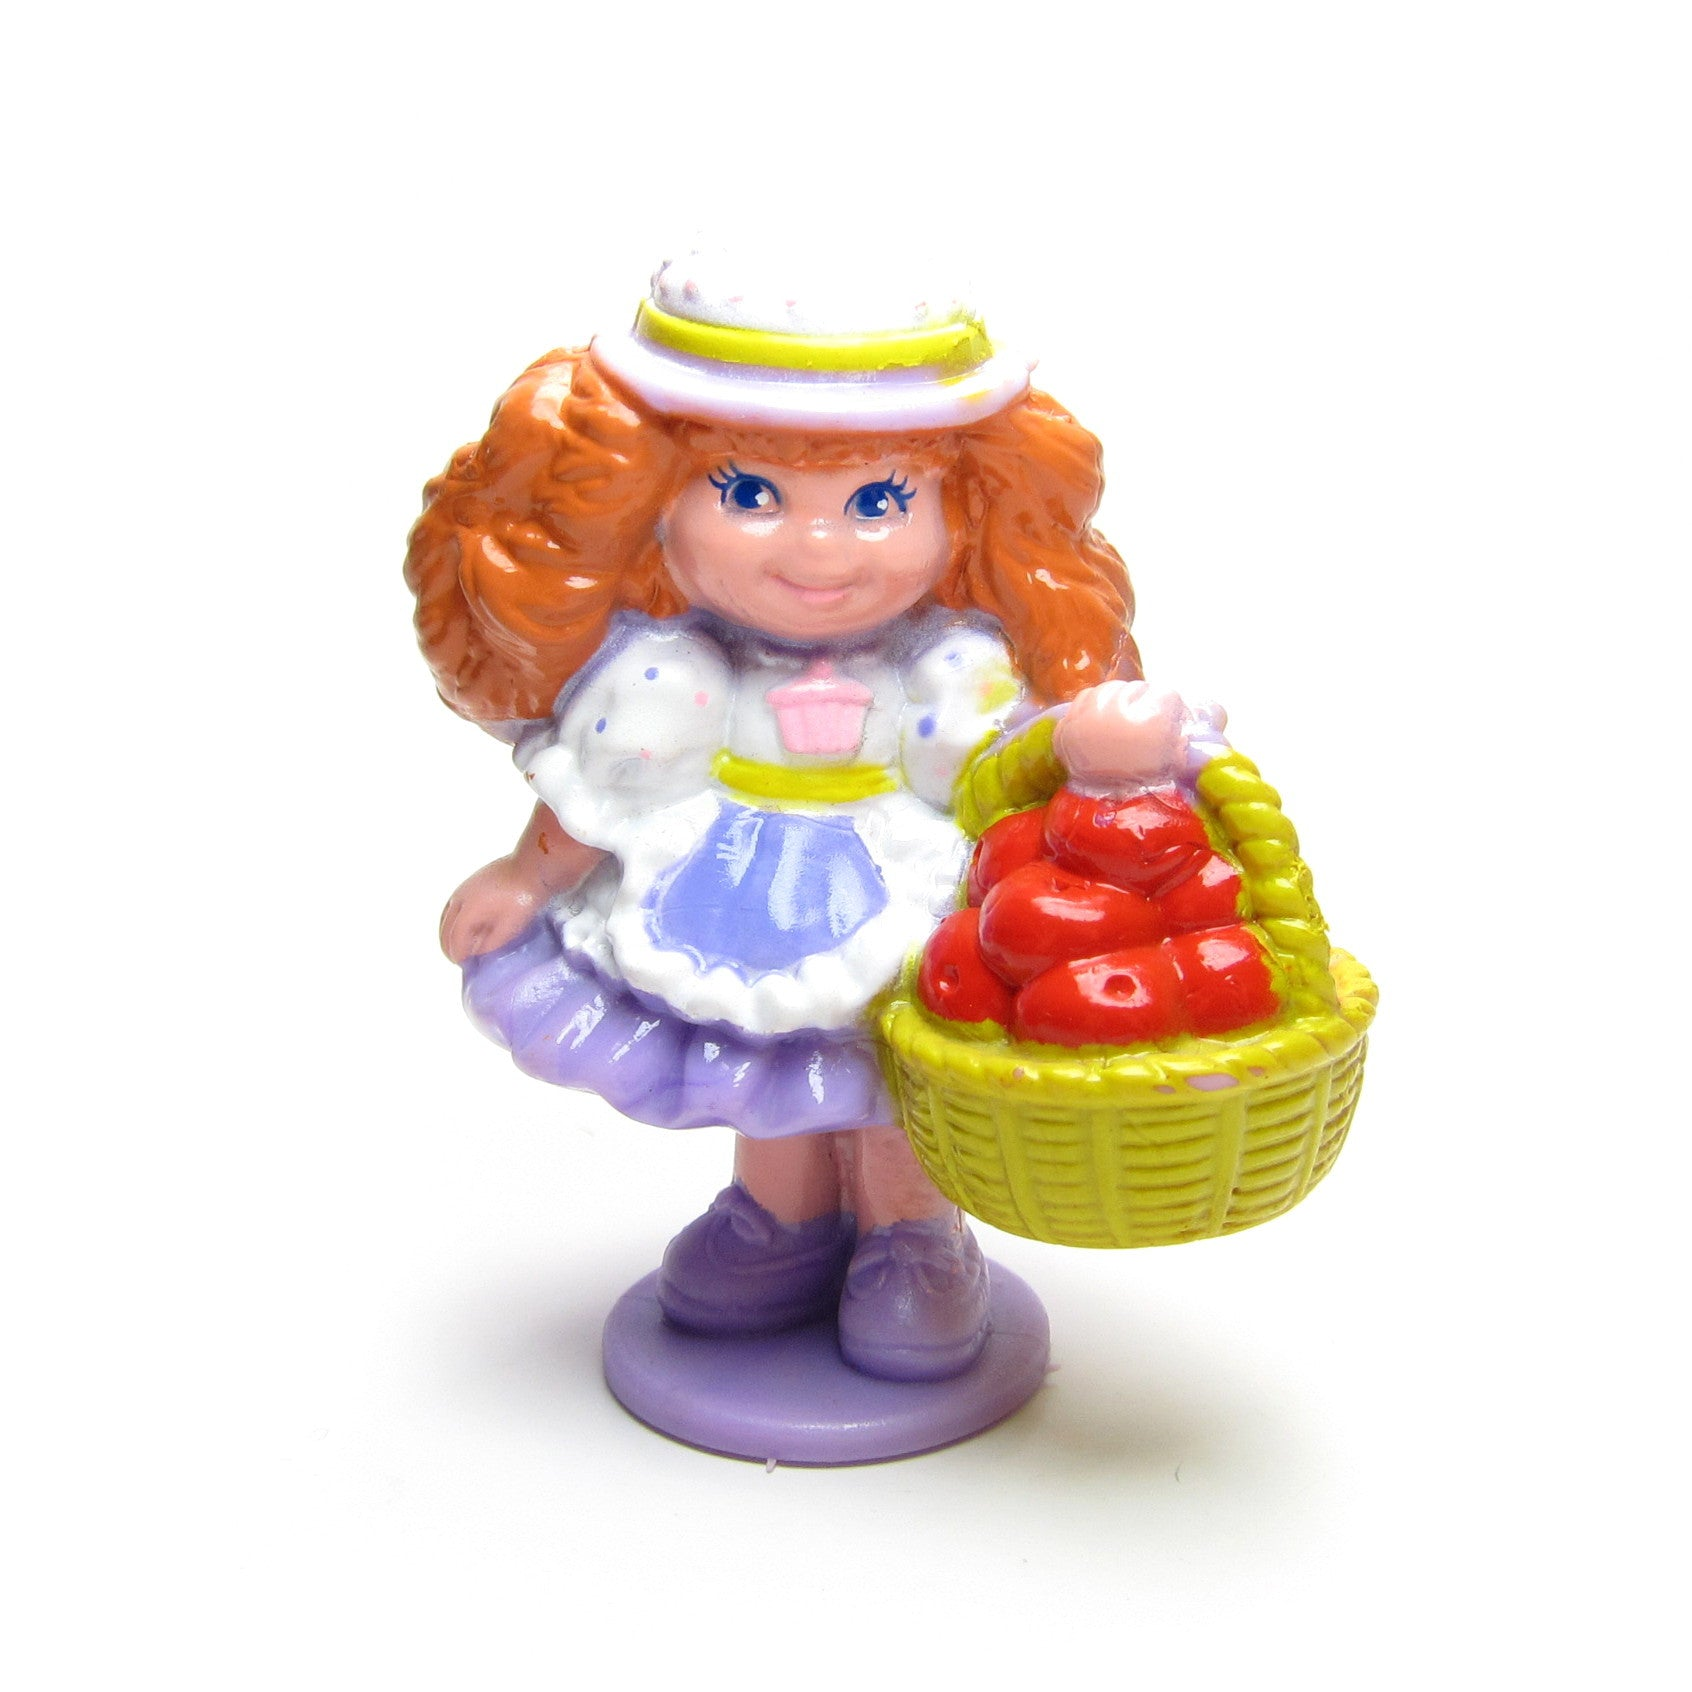 Bubblegum Becky miniature Cherry Merry Muffin figurine